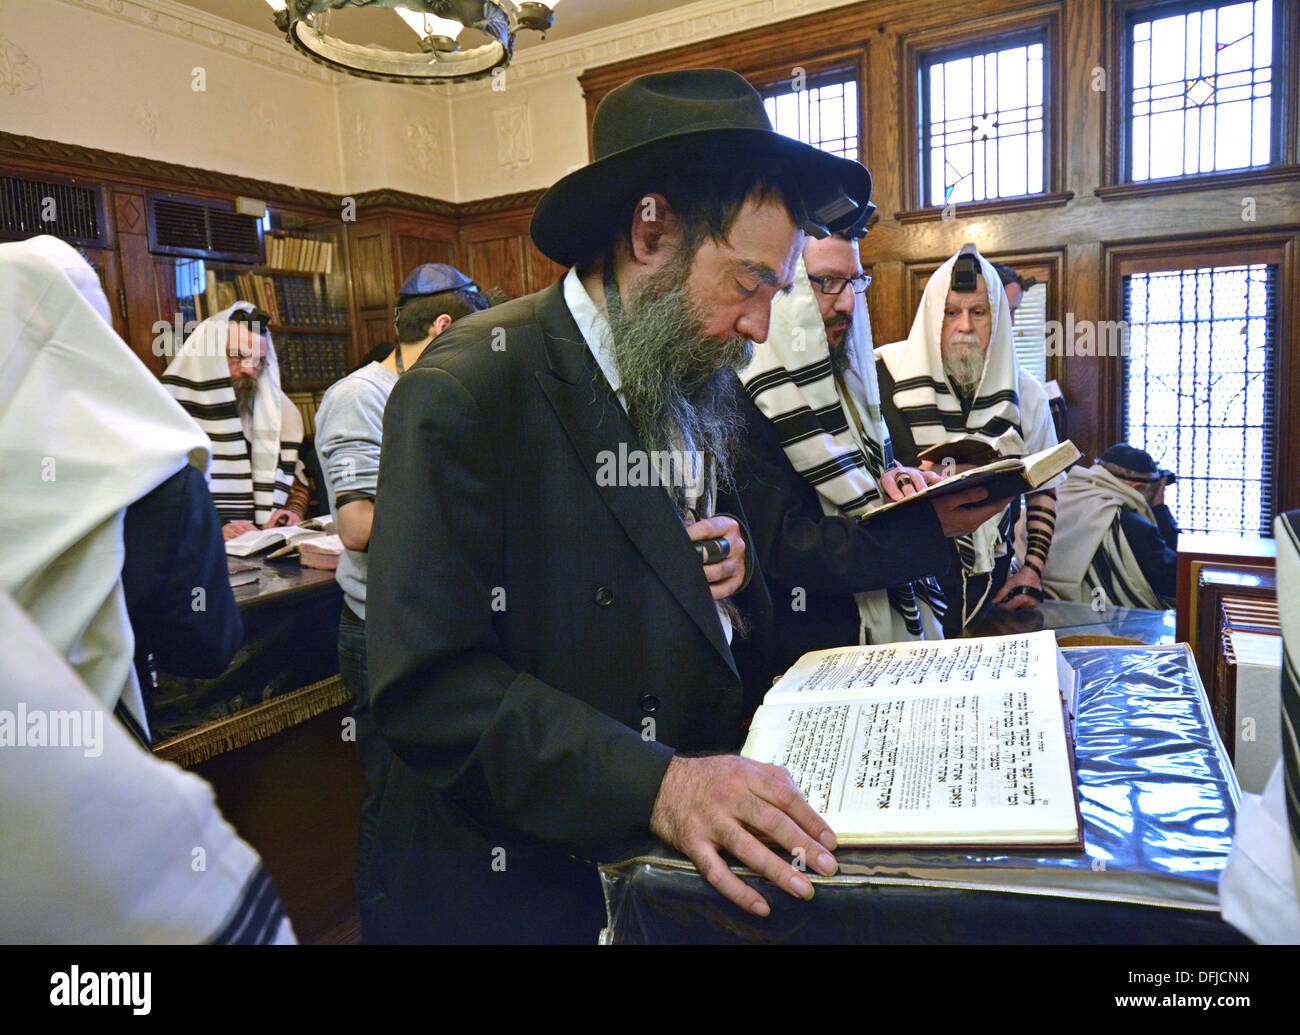 Weekday morning services in the Rebbe's office at Lubavitch Headquarters in Crown Heights, Brooklyn, New York - Stock Image